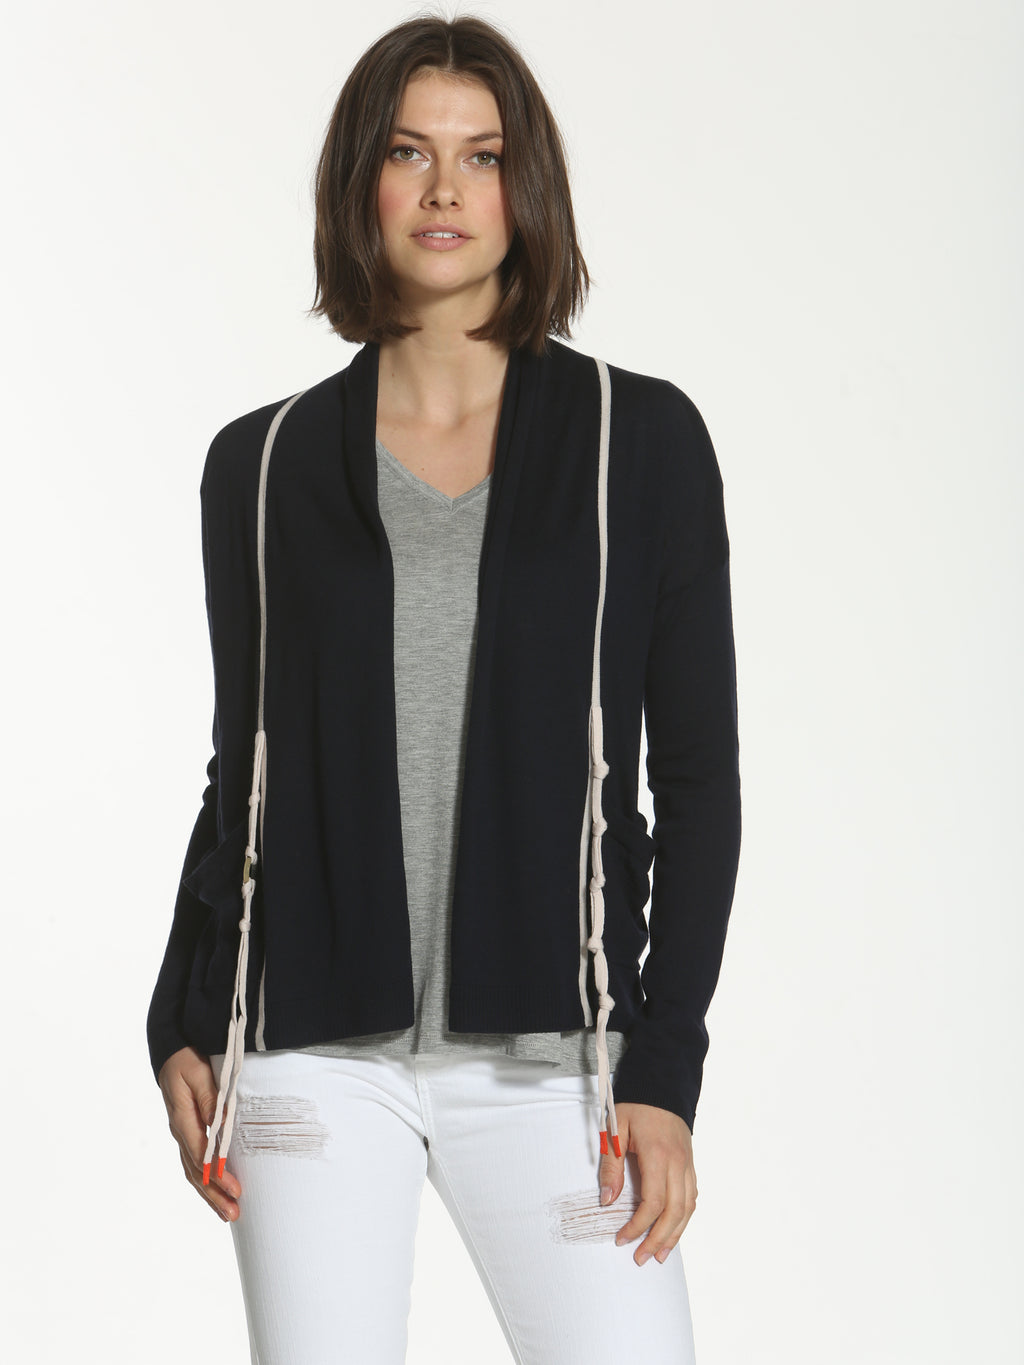 Ring Tie Cardigan - Navy